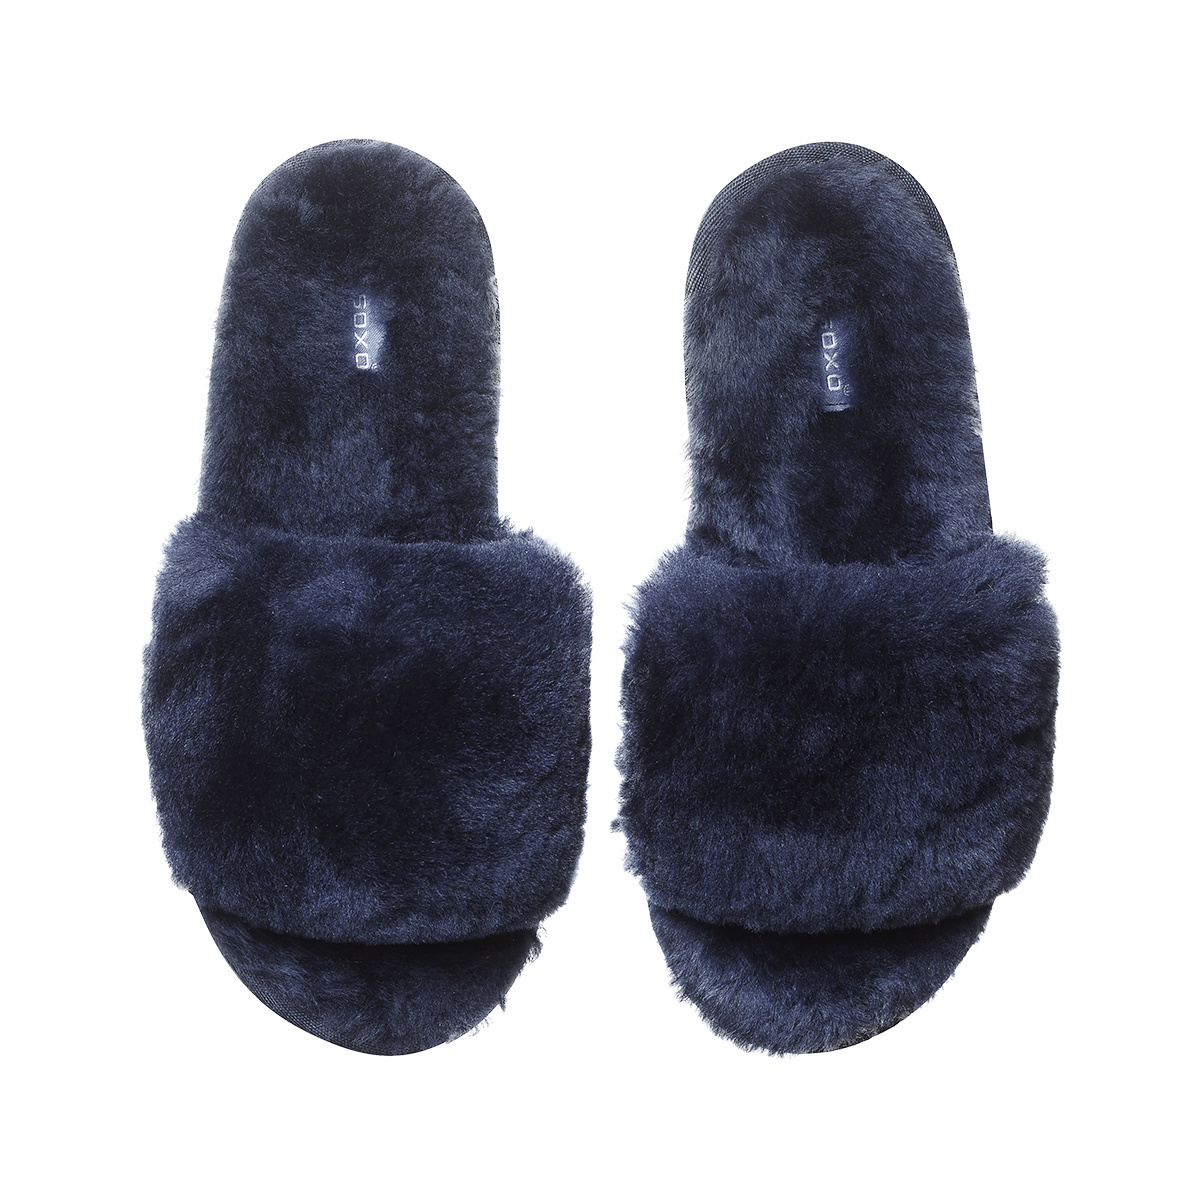 786708cac SOXO Women's slippers sheepskin navy blue | Slippers \ Classic NEW ...